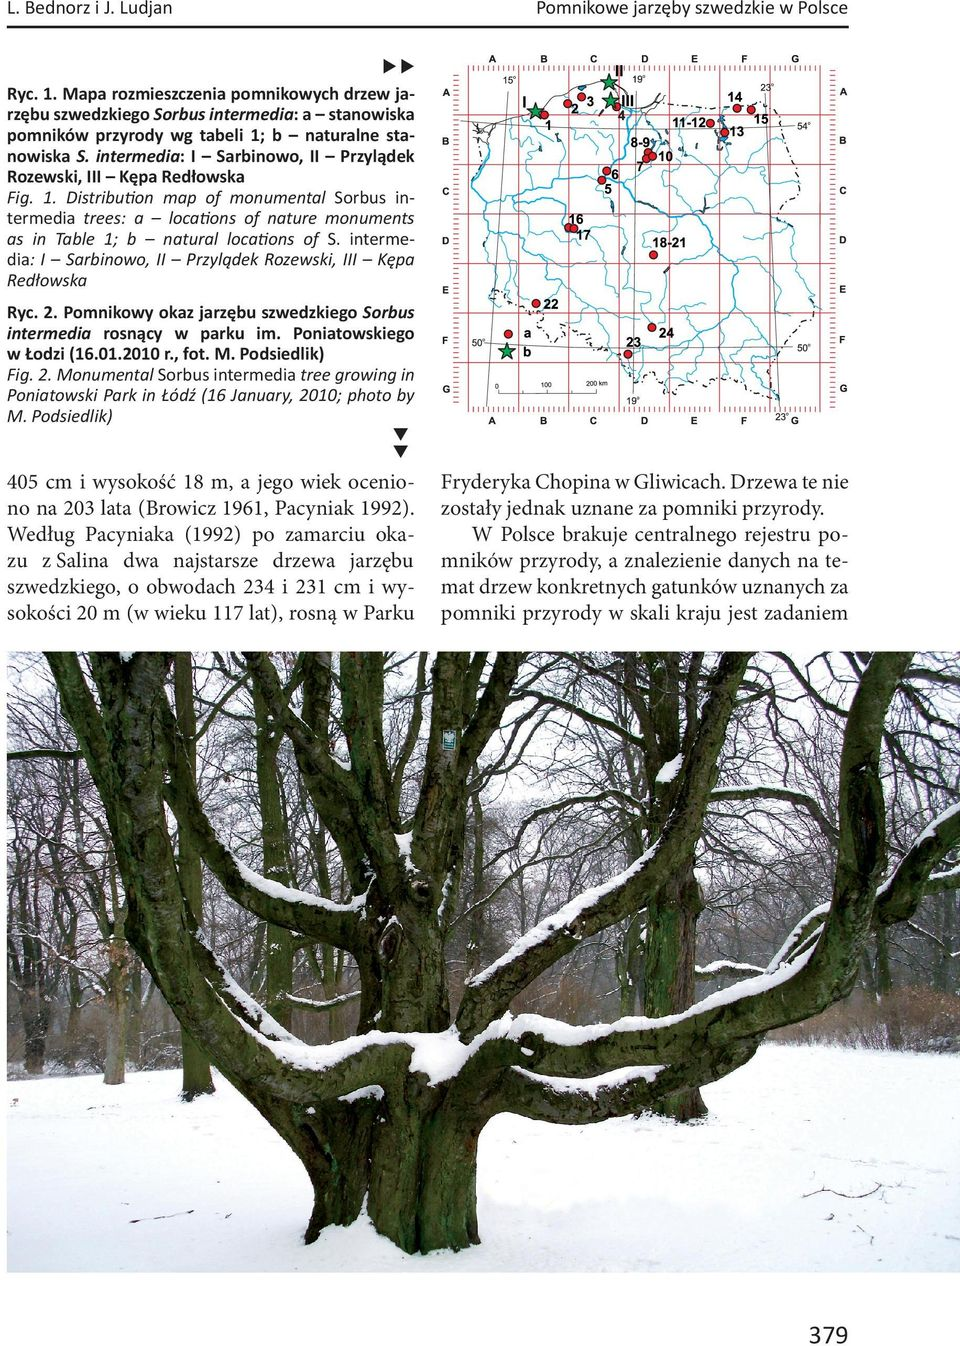 intermedia: I Sarbinowo, II Przylądek Rozewski, III Kępa Redłowska Fig. 1. Distribu on map of monumental Sorbus intermedia trees: a loca ons of nature monuments as in Table 1; b natural loca ons of S.